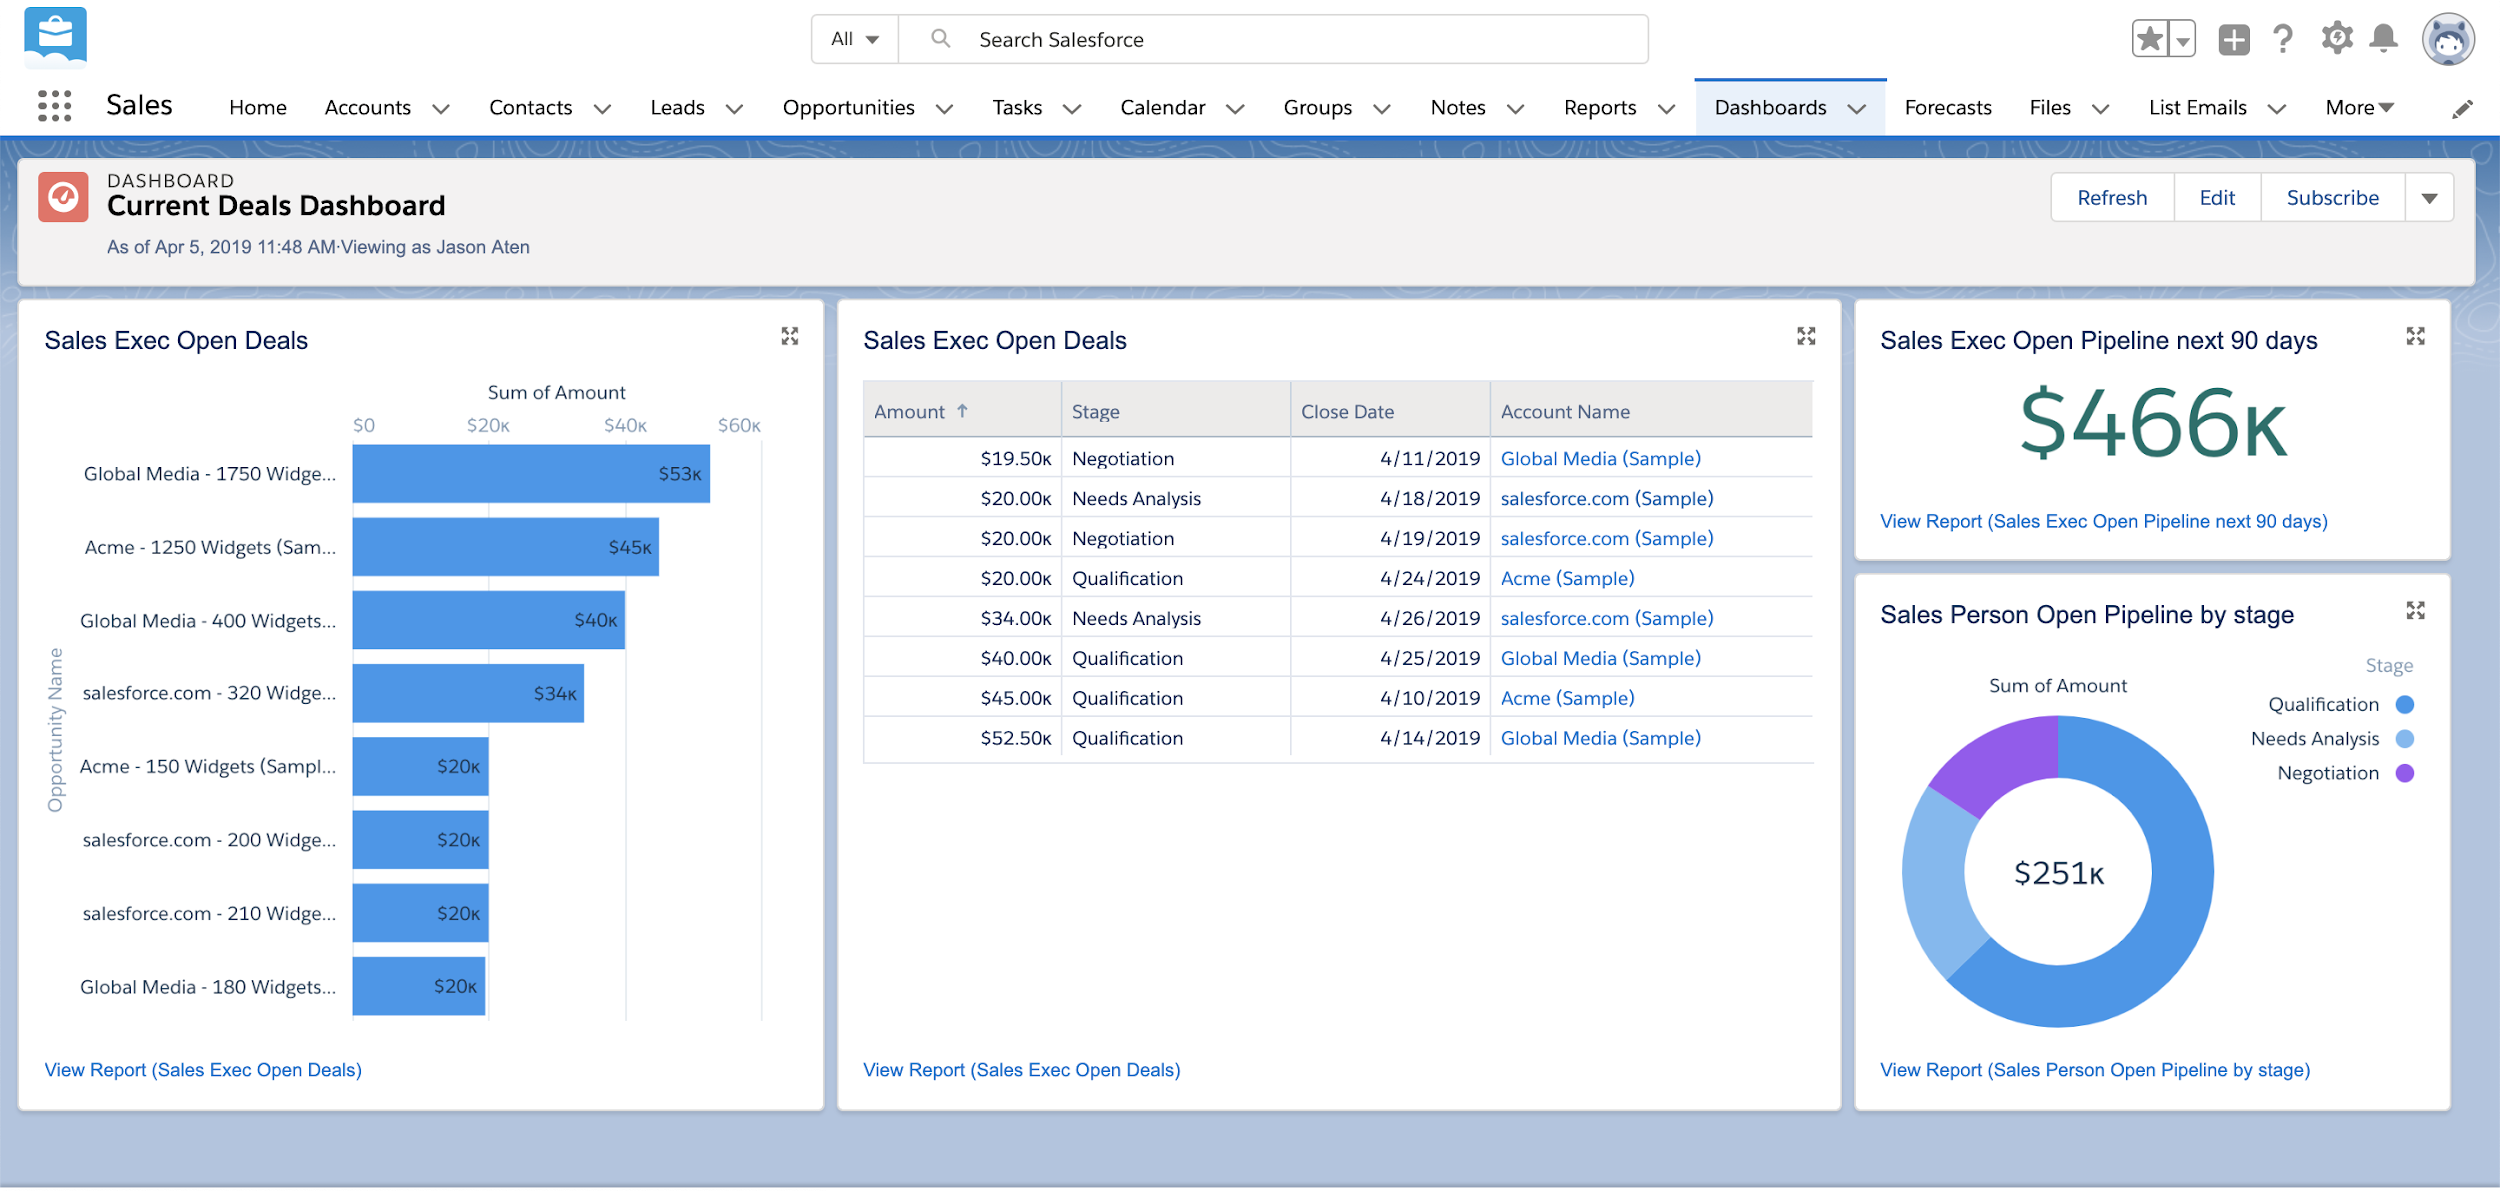 Current Deals Dashboard in Salesforce